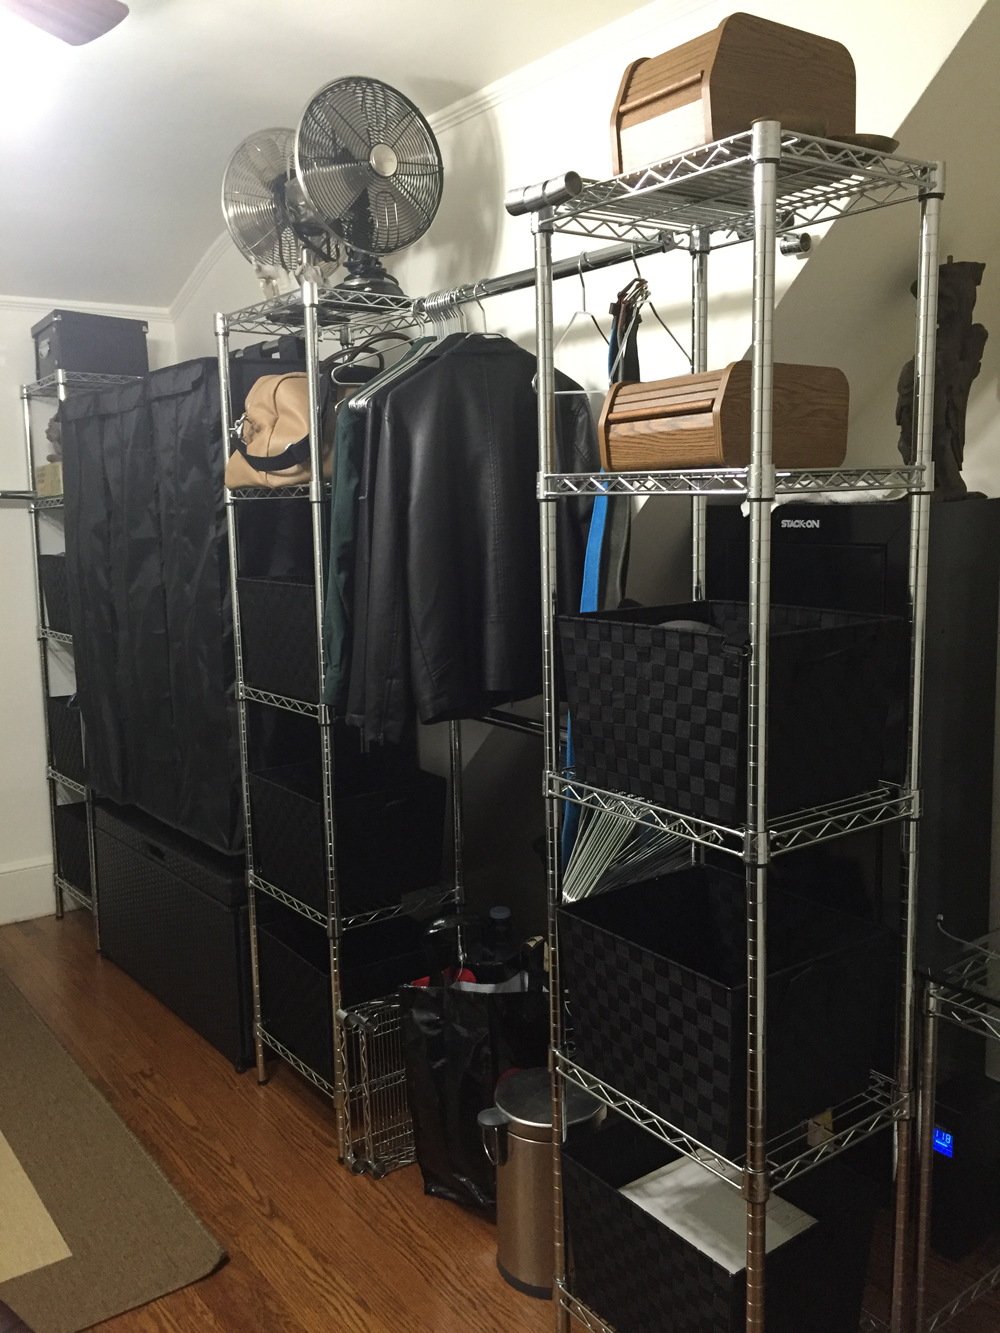 where to put your clothes when you don't have a closet - the Storage Ideas When You Don't Have a Closet